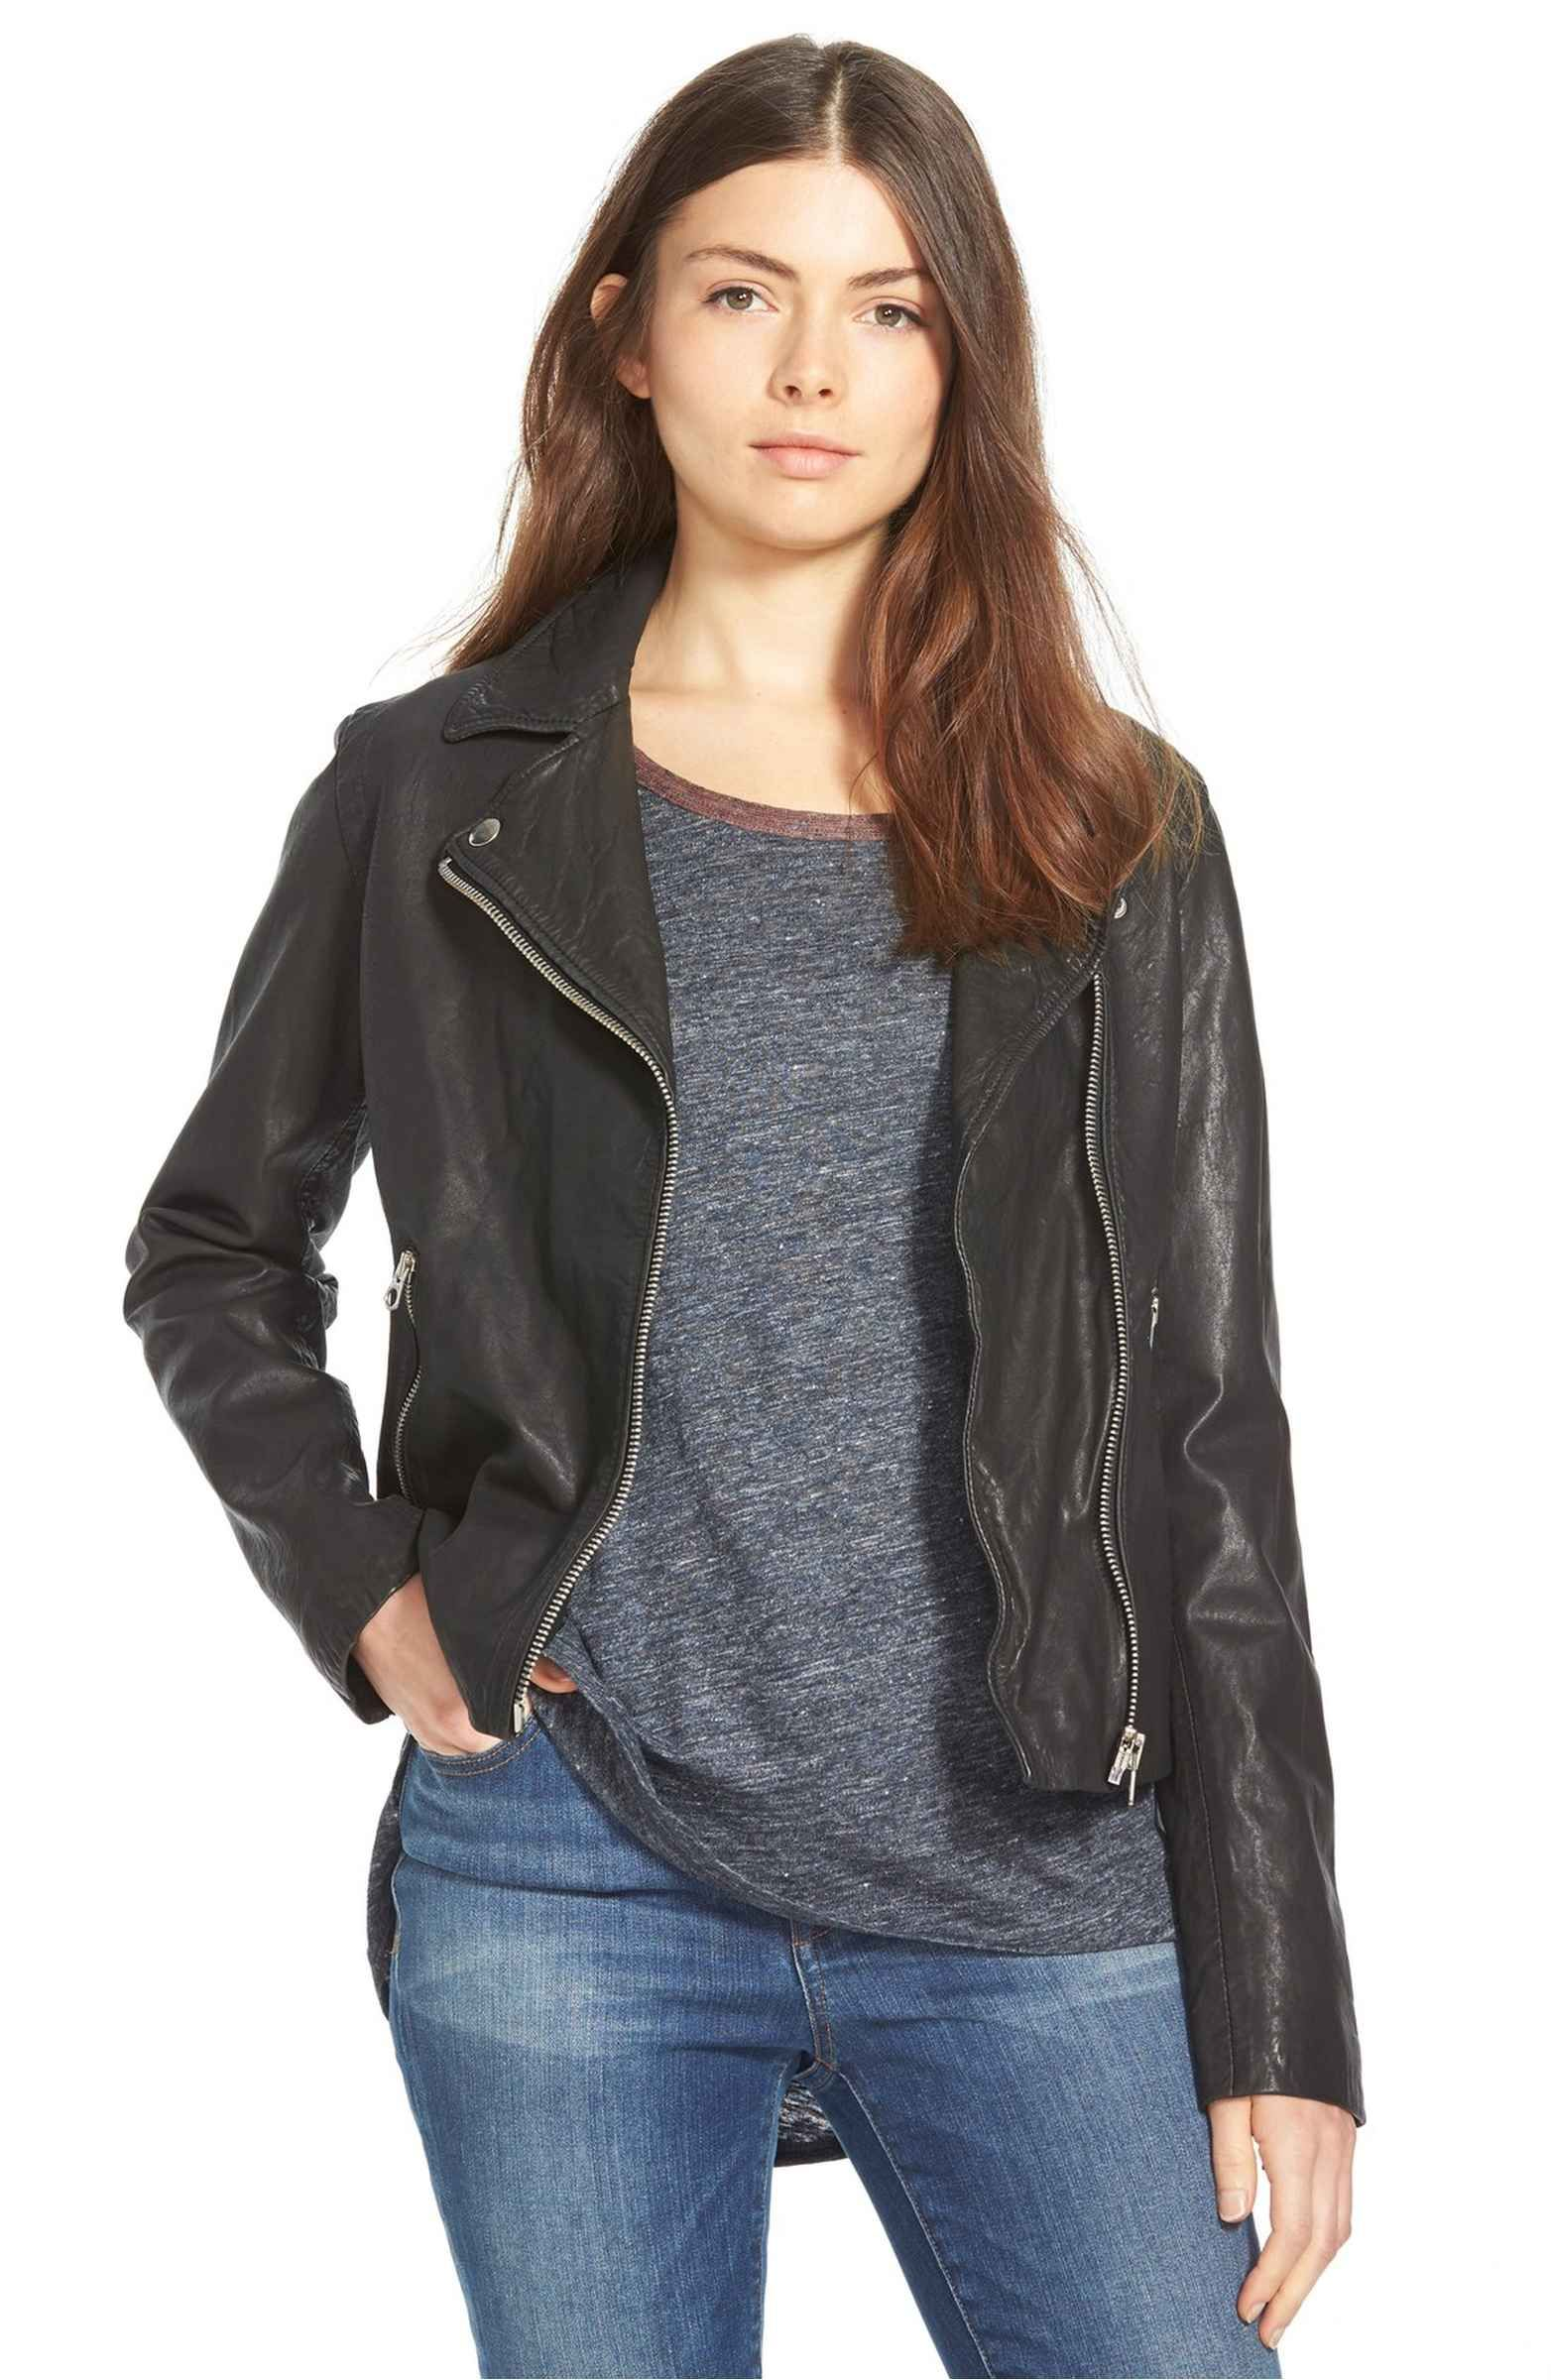 Madewell Washed Leather Moto Jacket Nordstrom Washed Leather Jacket Leather Jackets Women Washed Leather [ 2400 x 1564 Pixel ]